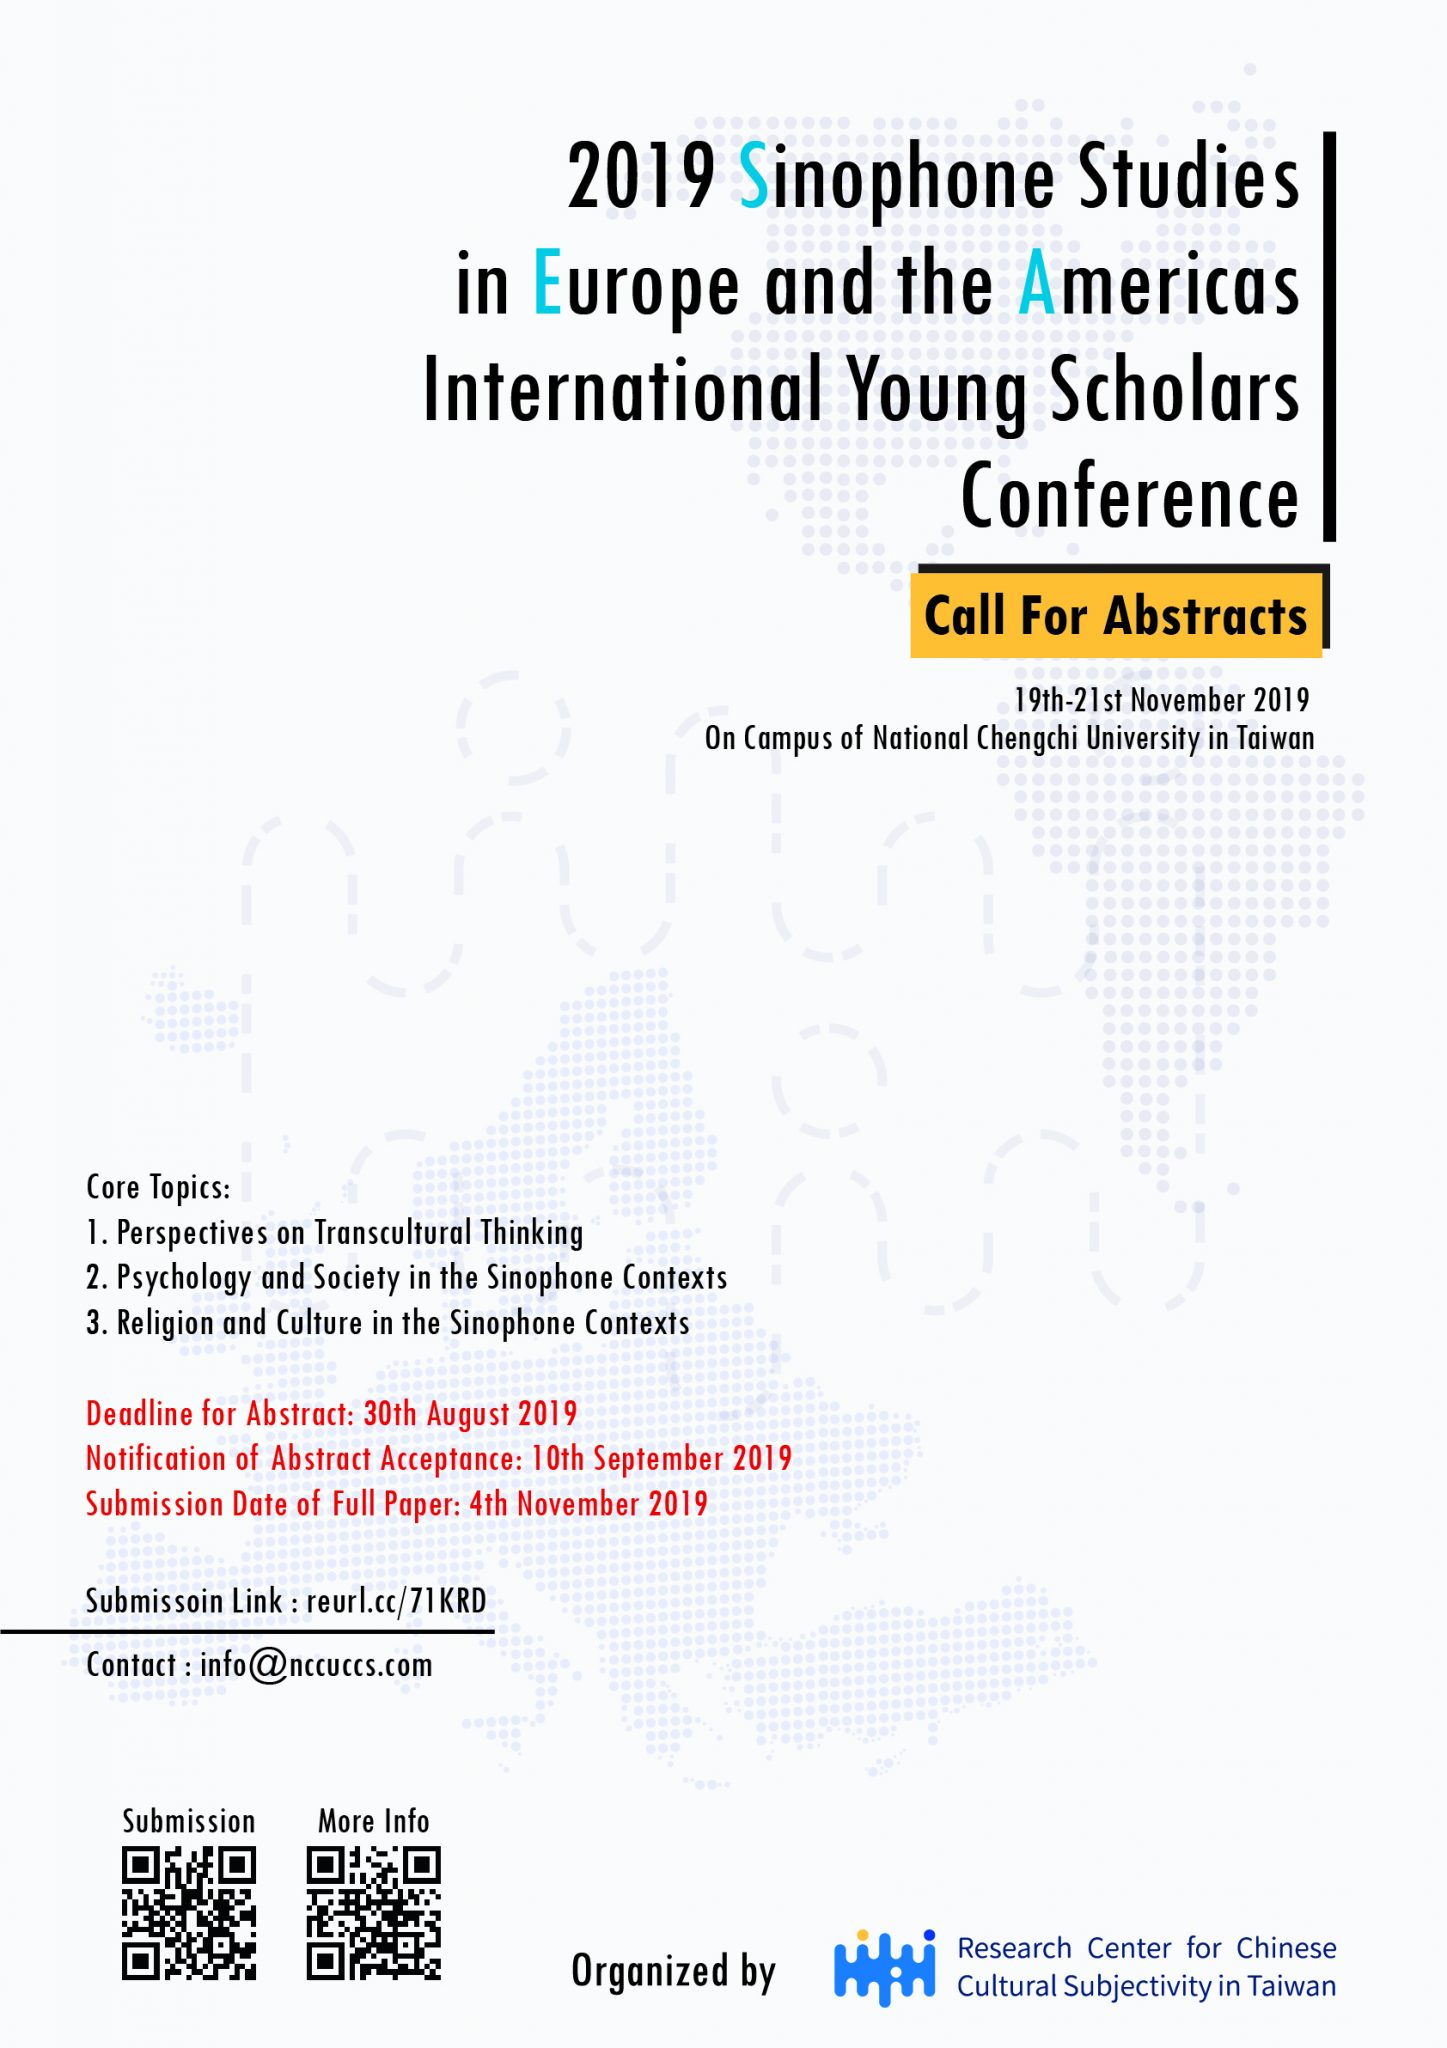 2019 SEA International Young Scholars Conference